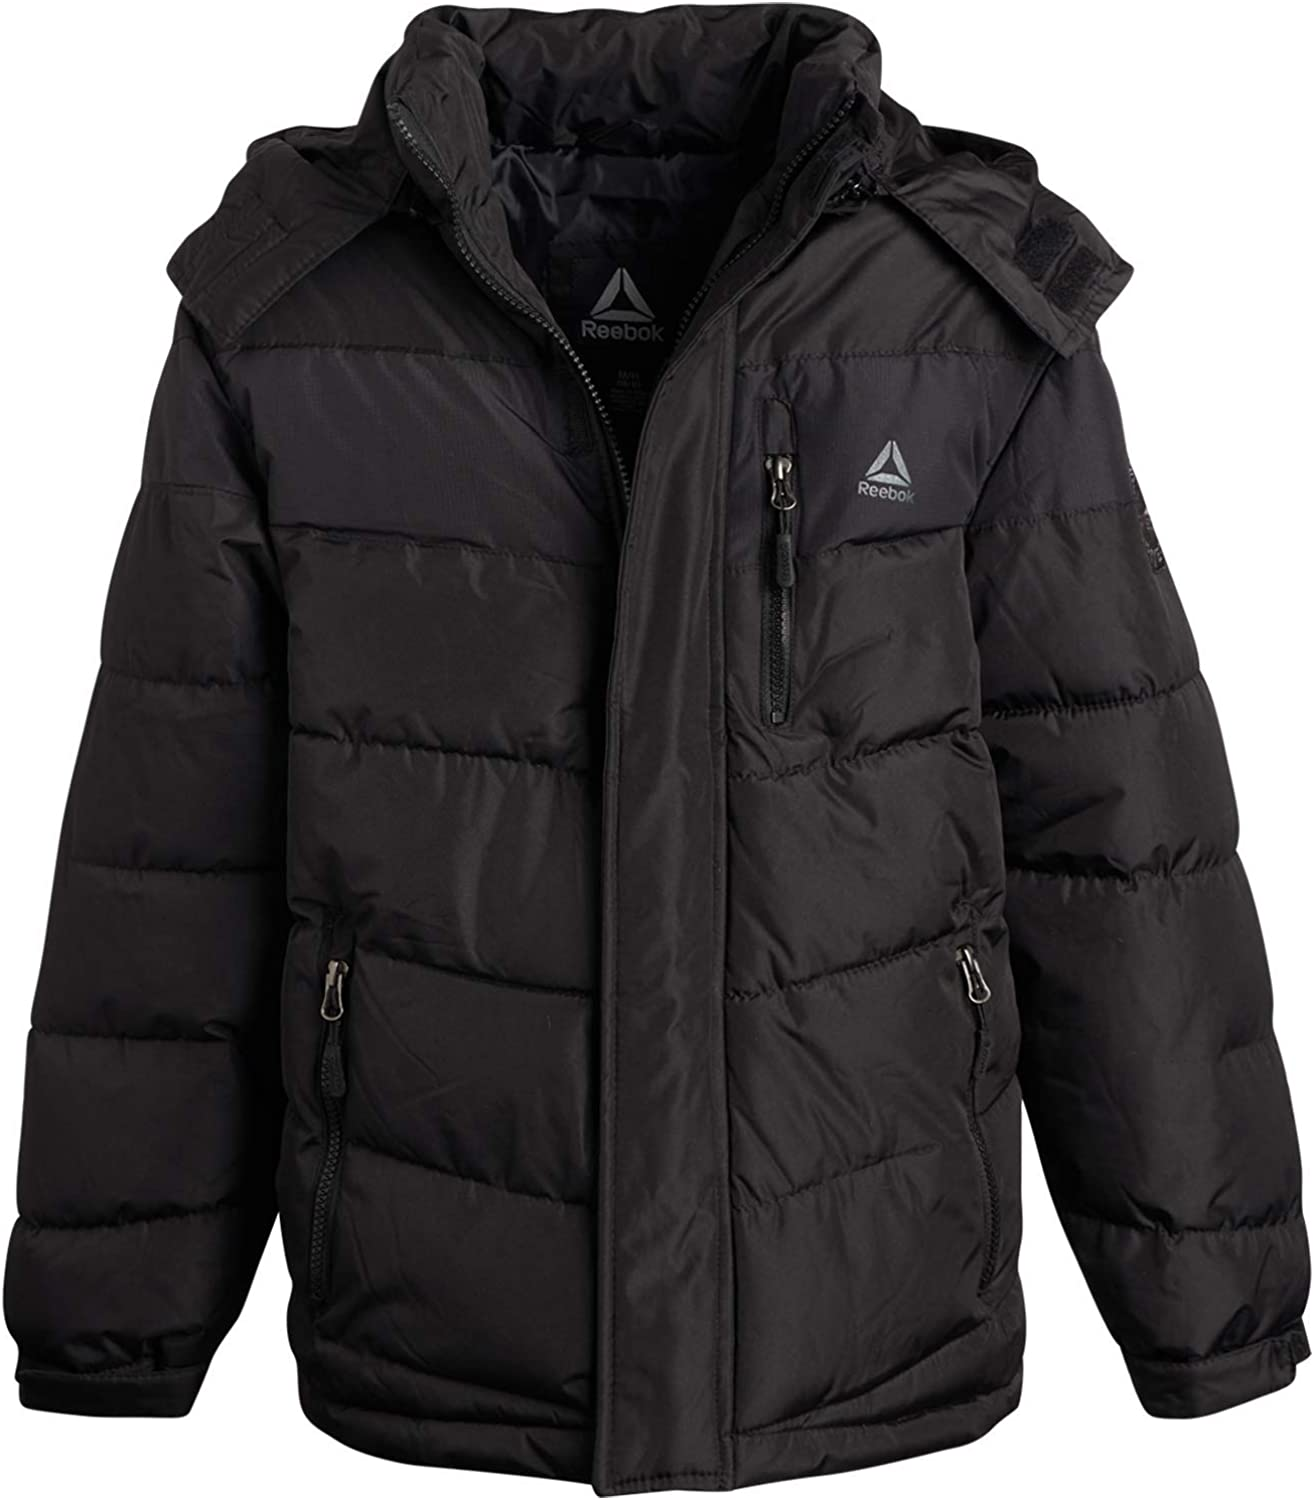 Reebok Boys Outerwear – Heavyweight Thick Winter Bubble Puffer Jacket